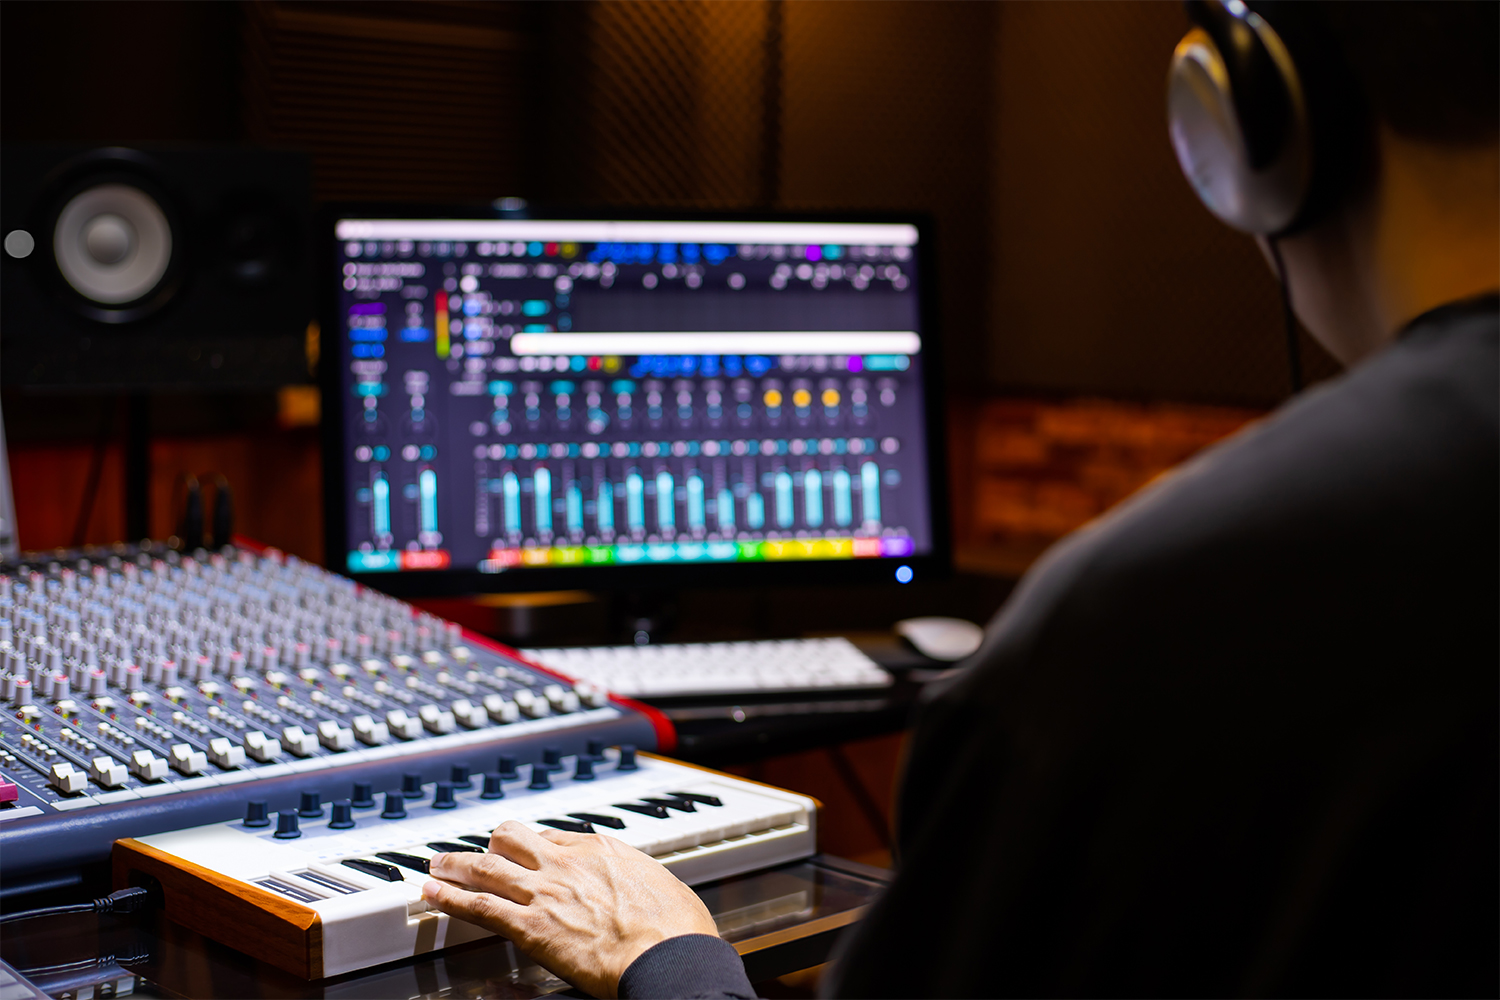 4 Differences Between A Commercial And Bedroom Studio Producer